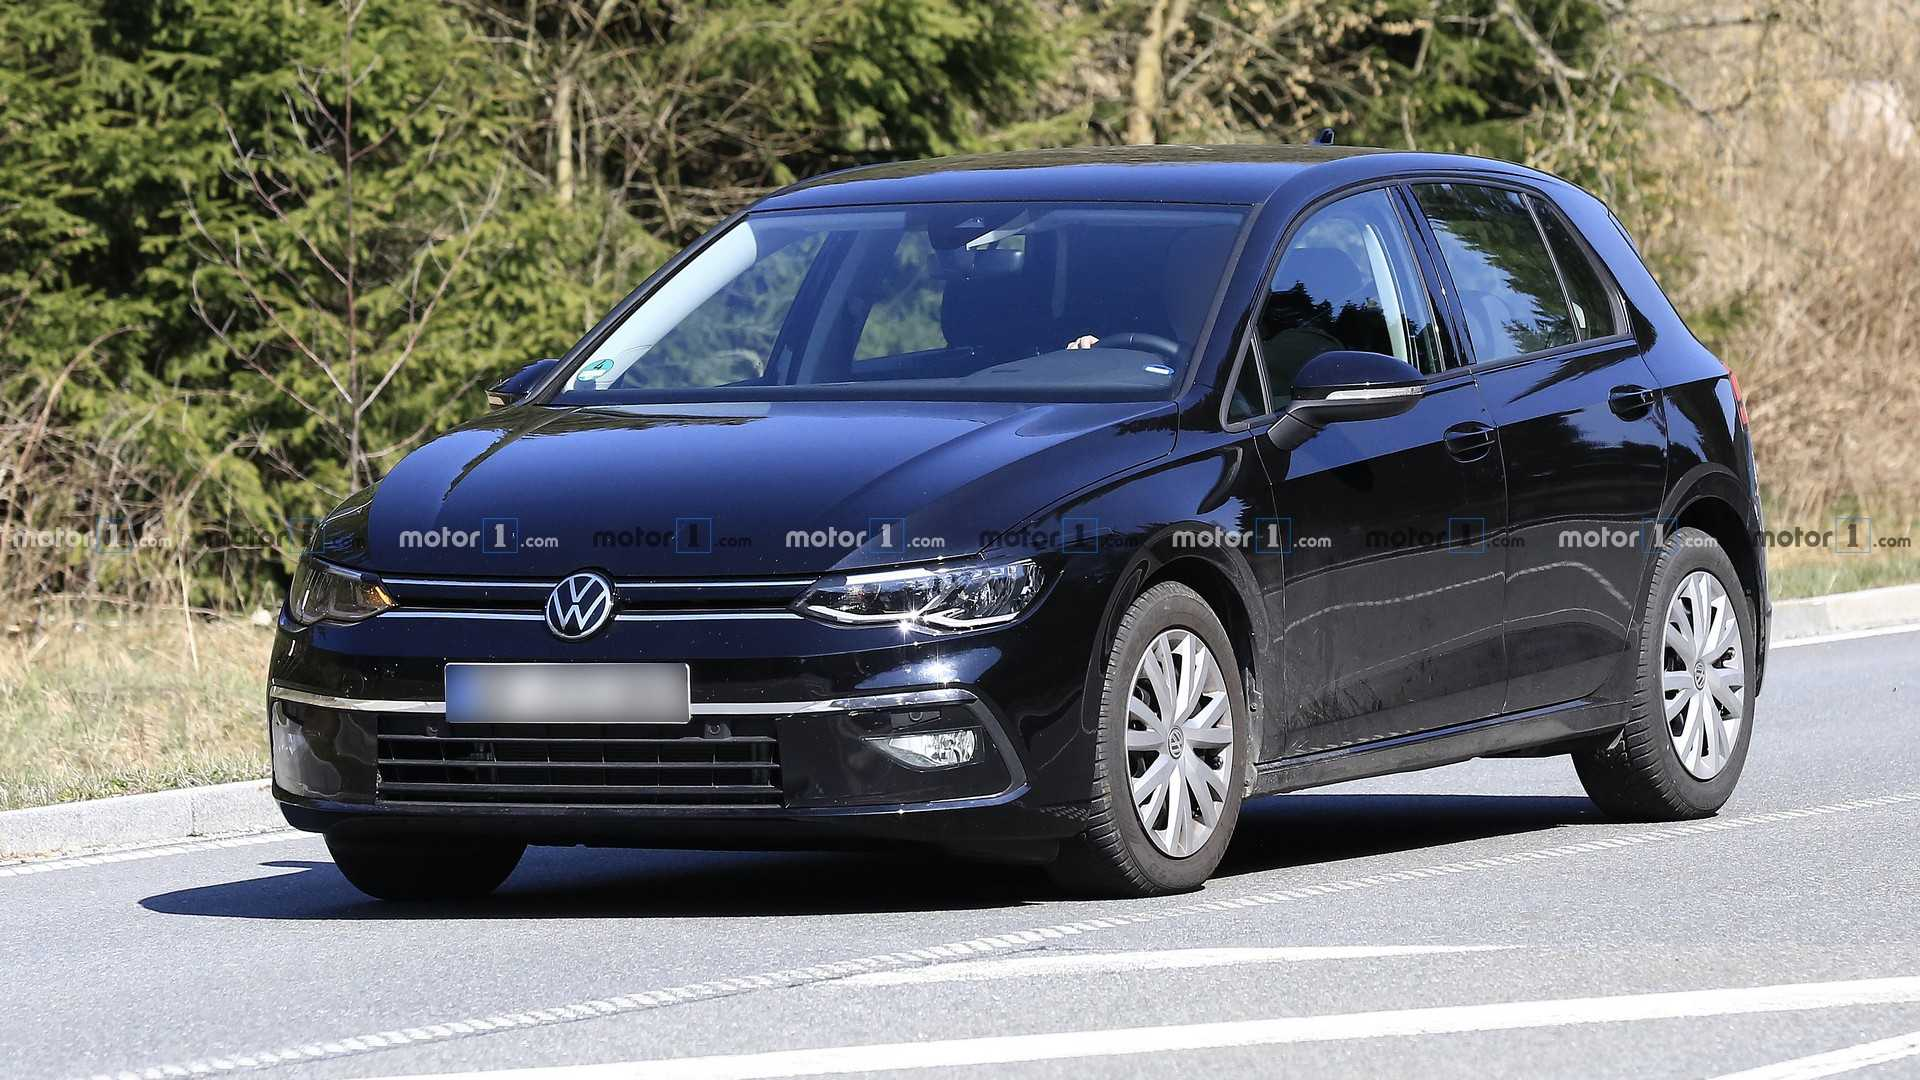 99 The Best 2020 Volkswagen Golf Sportwagen Performance